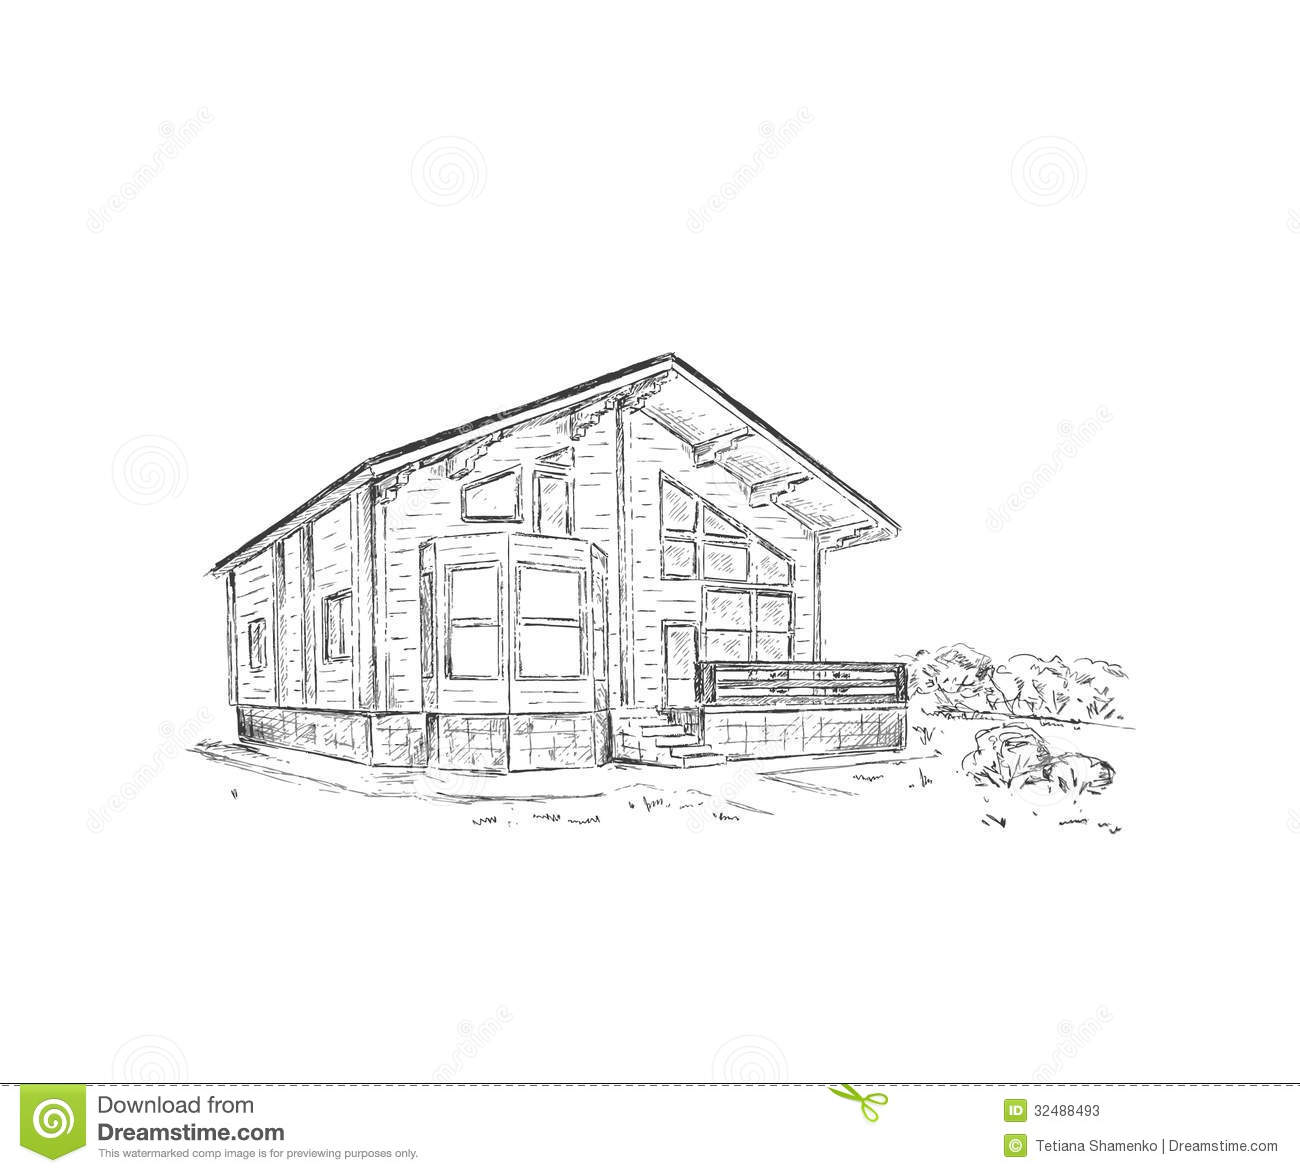 What Is Good Design Part 3 together with 150m2 Floor Plans likewise 14777505002643914 further Roof Cost Guide furthermore Indigenous architecture. on flat roof design plans